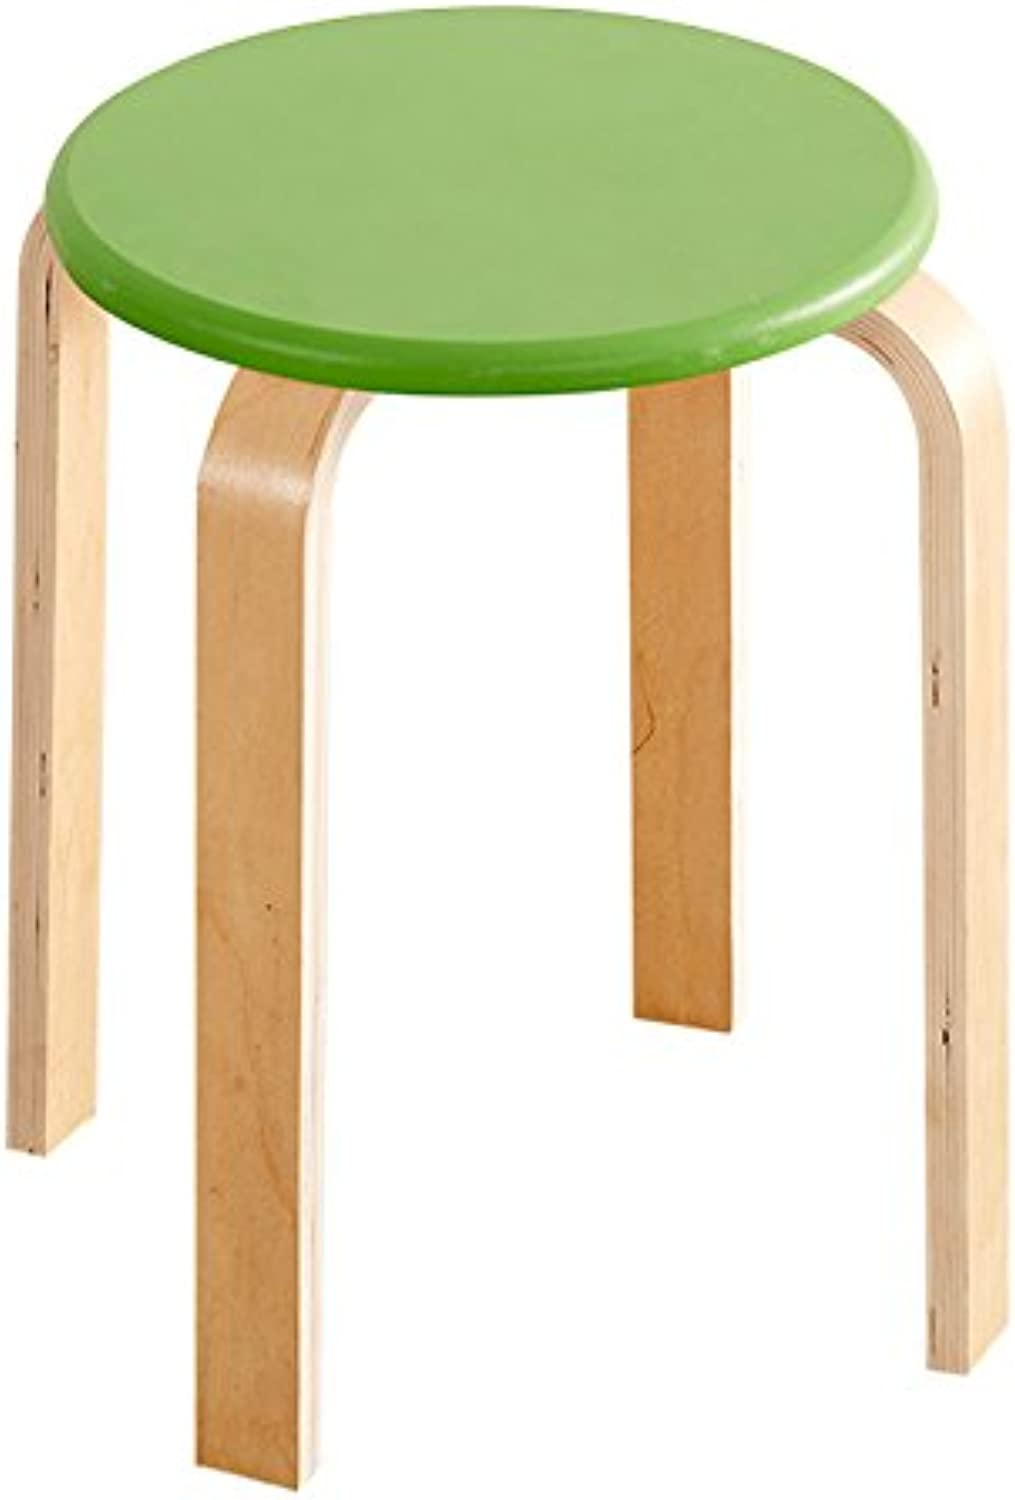 Solid Wood Simple Modern Stool, Coffee Chair Bar Entrance Bar Fabric Wooden Bench ( color   Green )